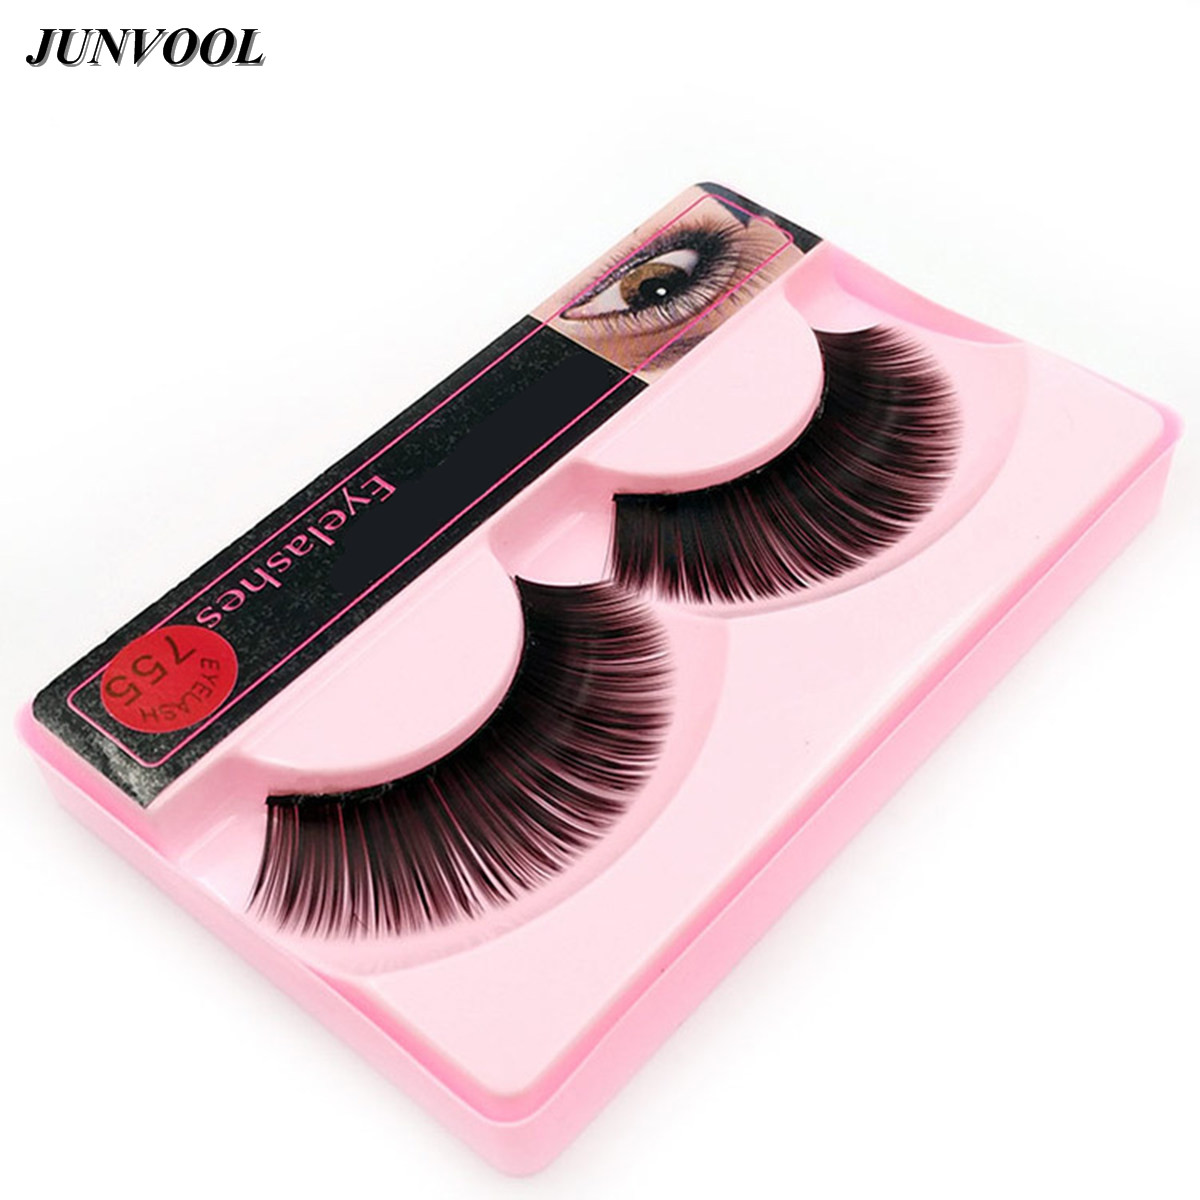 1 Pair False Eyelashes Makeup Very Thick Long Fake Eye Lashes Extention Tools Natural Black Cilia False Eye Lash For Ladies Girl